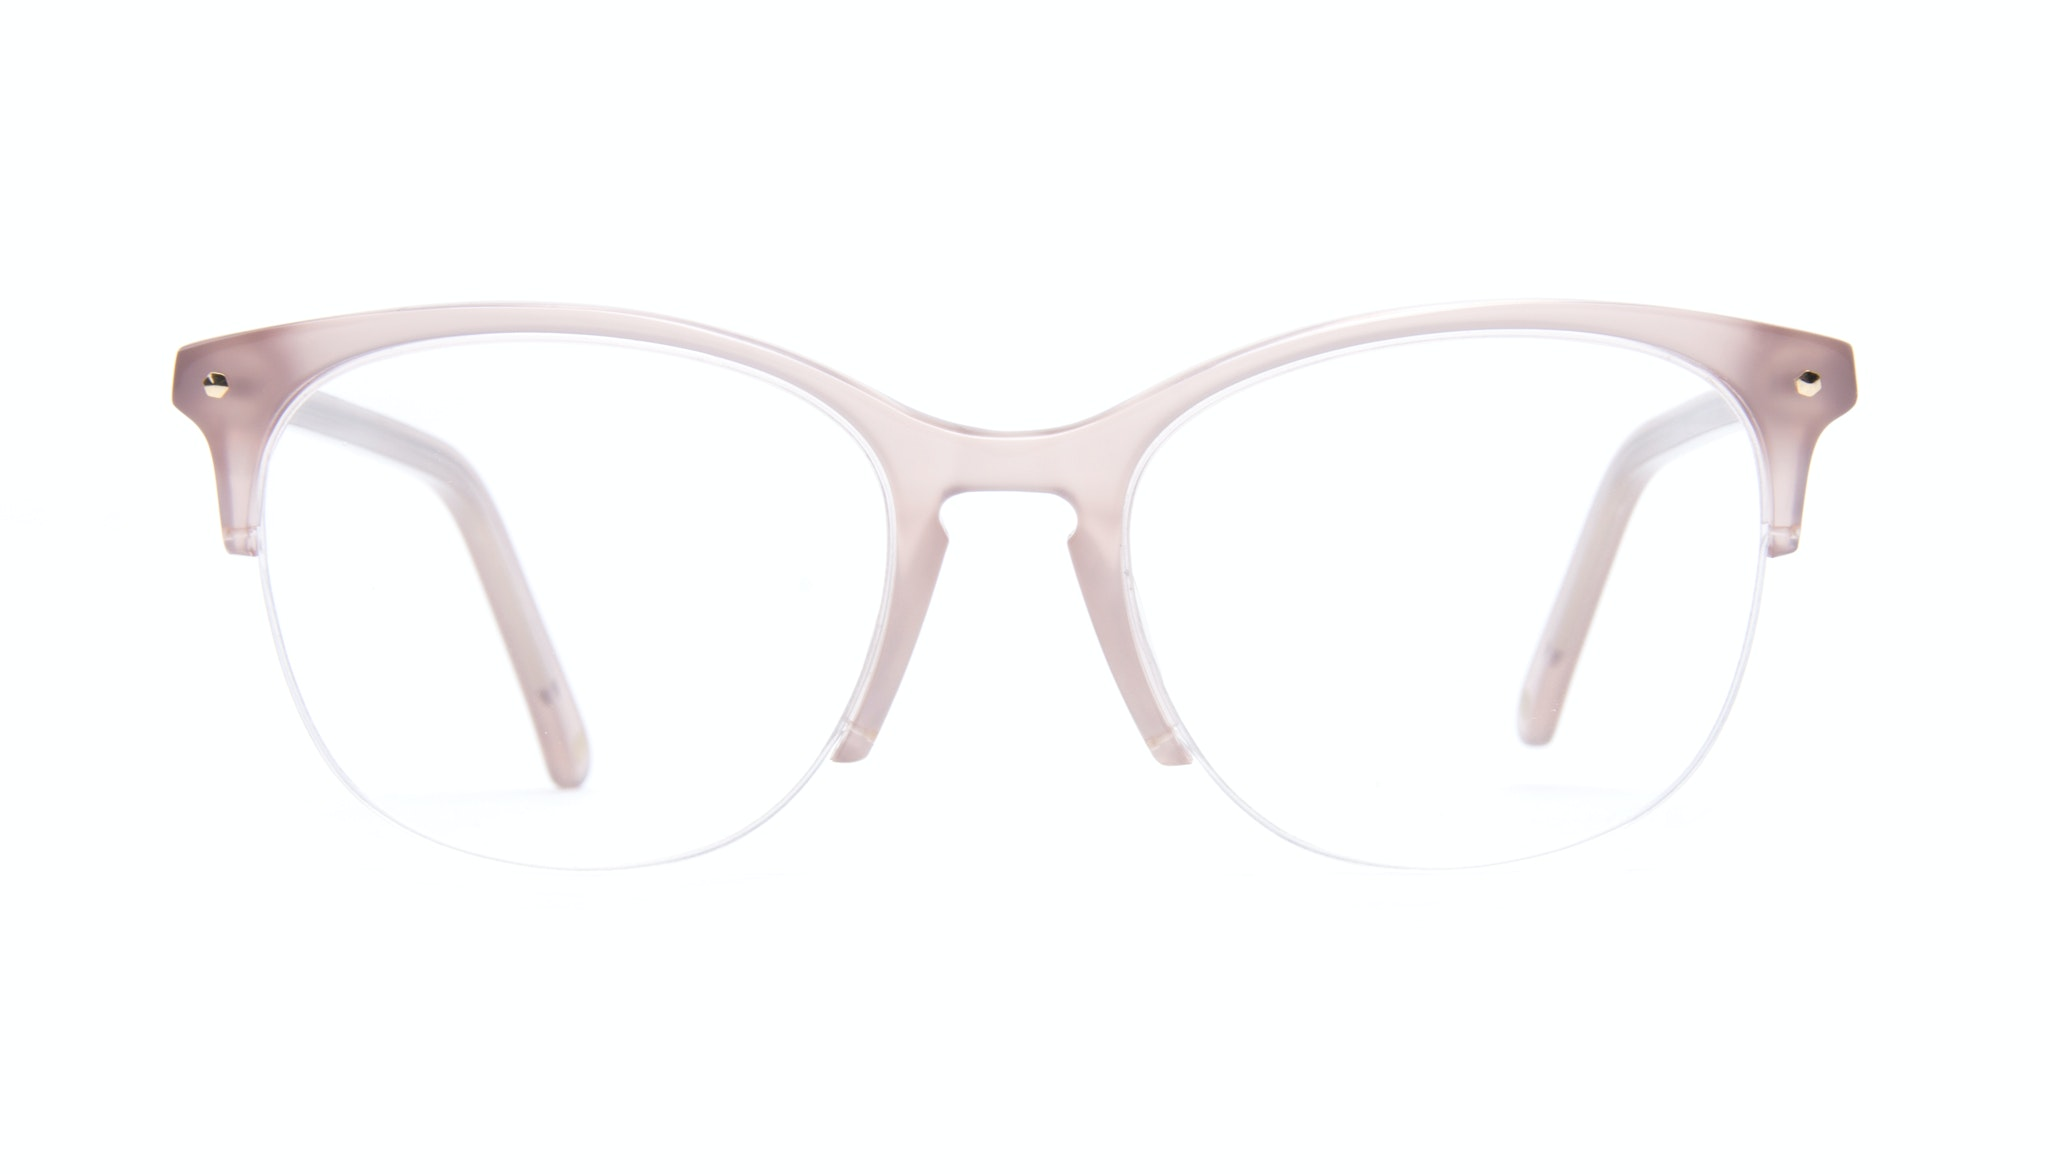 Affordable Fashion Glasses Rectangle Round Eyeglasses Women Nadine Light Pink Mouse